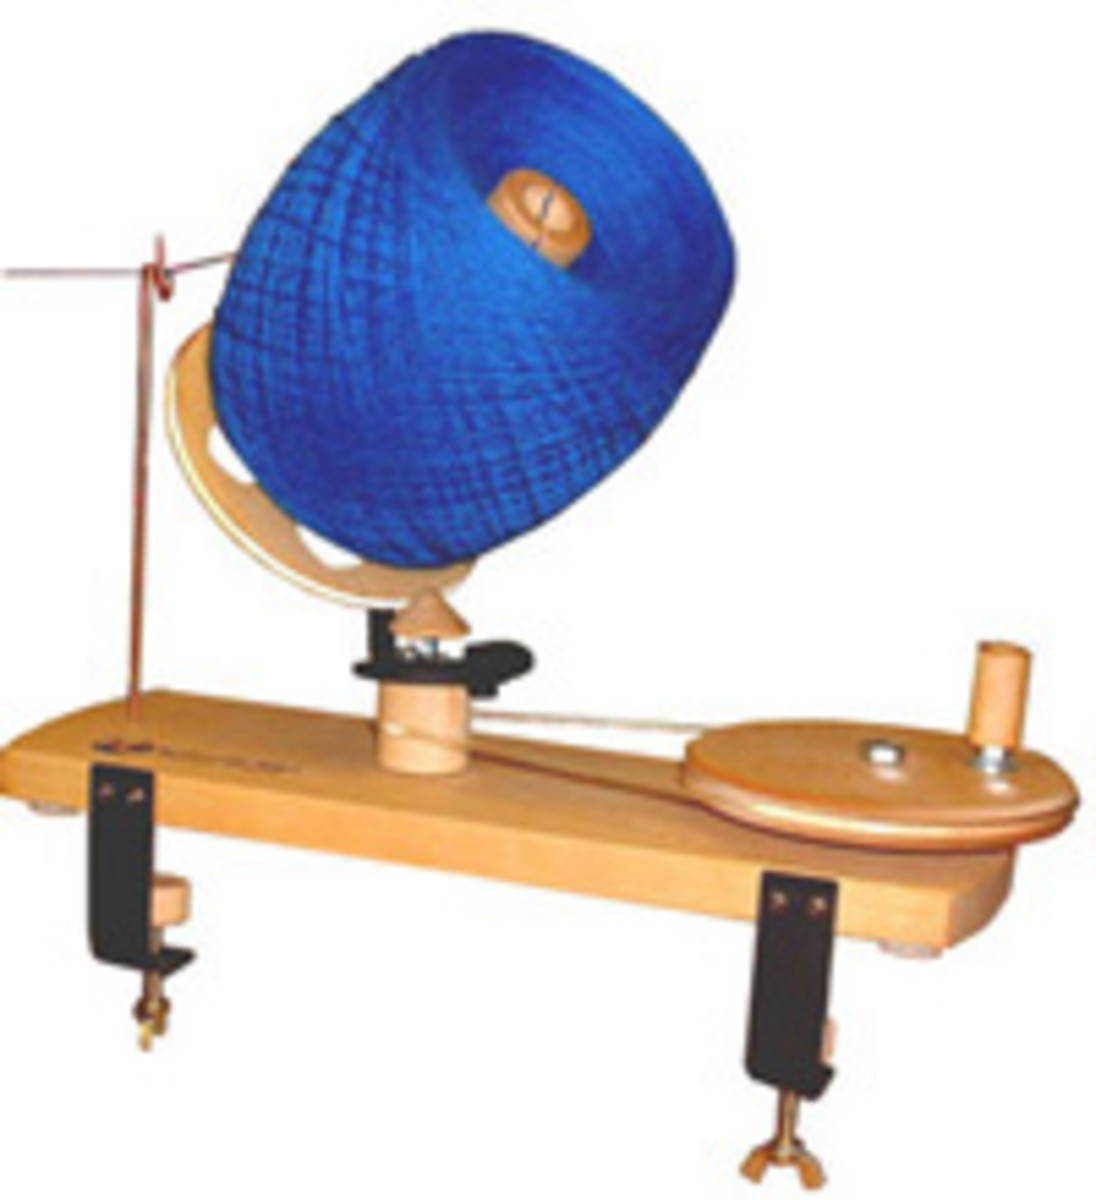 "The original wooden ball winder that makes center pull balls up to 6"" in diameter. Made from solid birch and finished with linseed oil. Designed for many years of use."